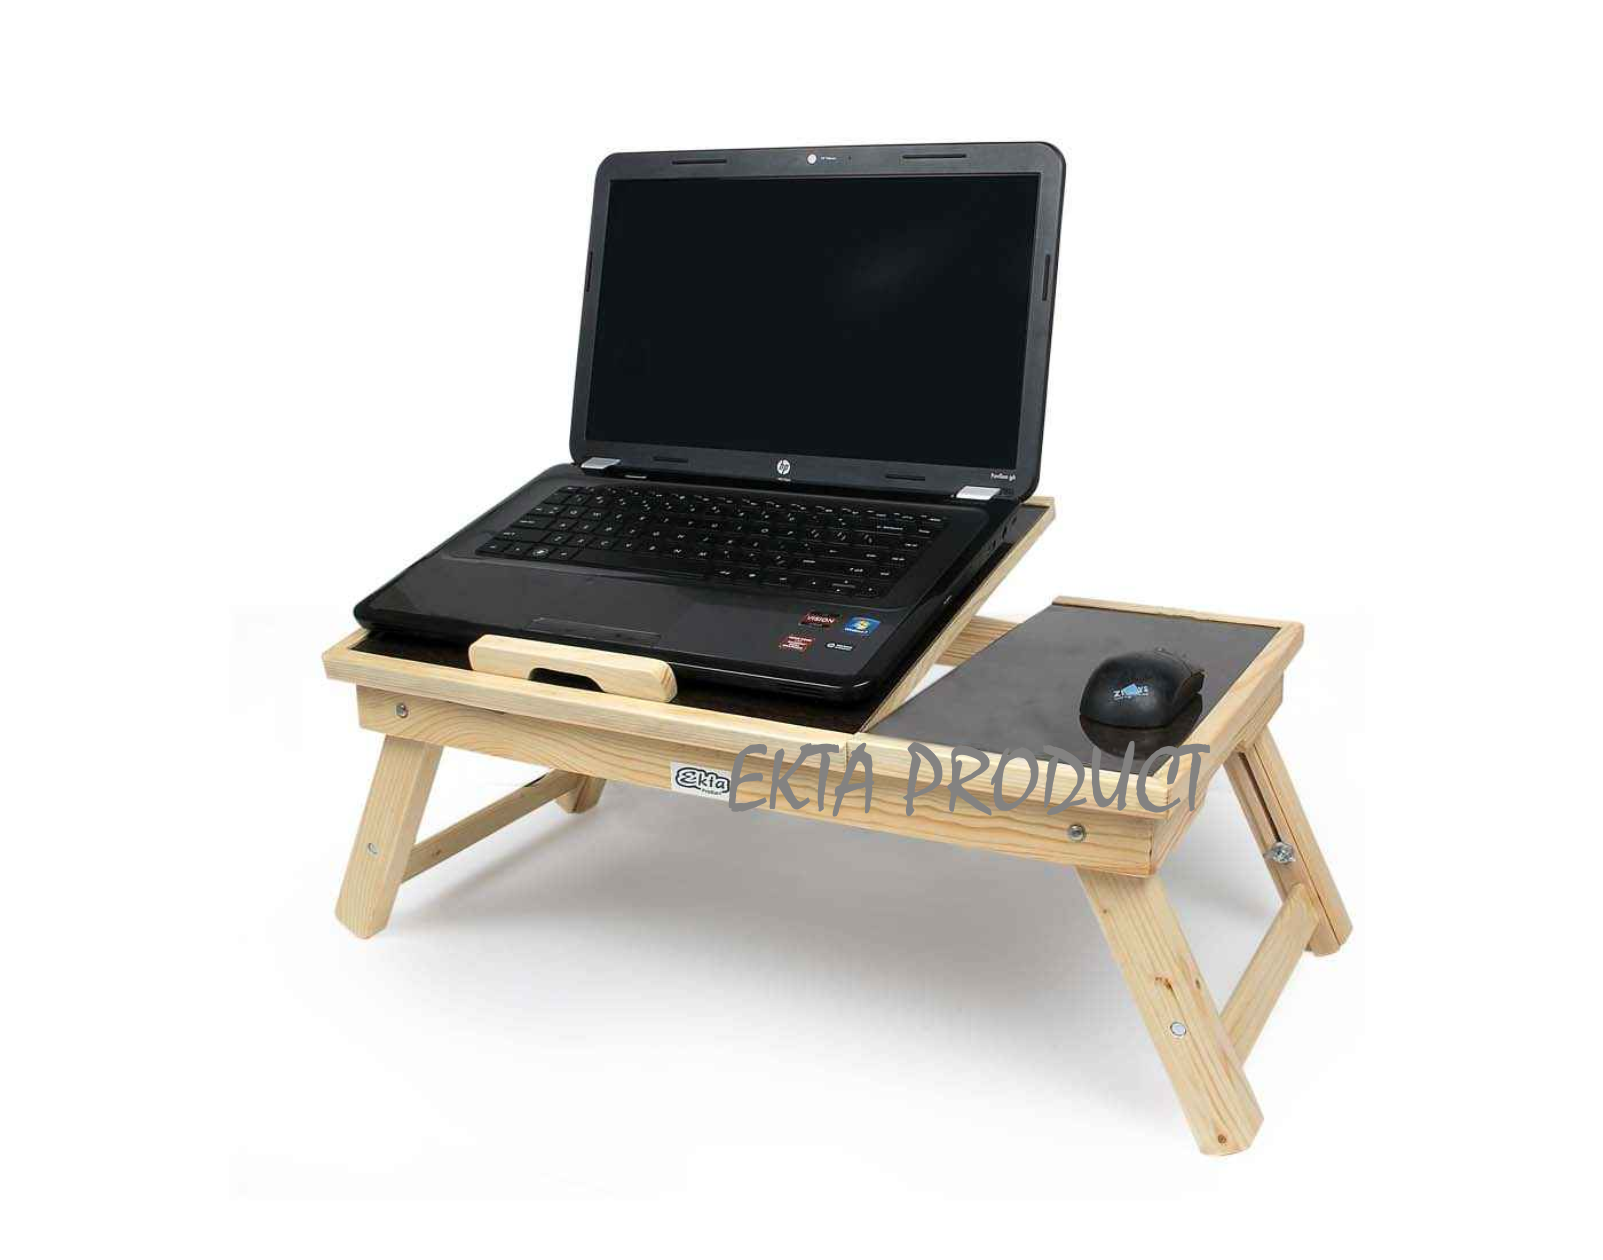 Folding Study Table : Manufacturer, Supplier of Folding Study table in Mumbai, India.